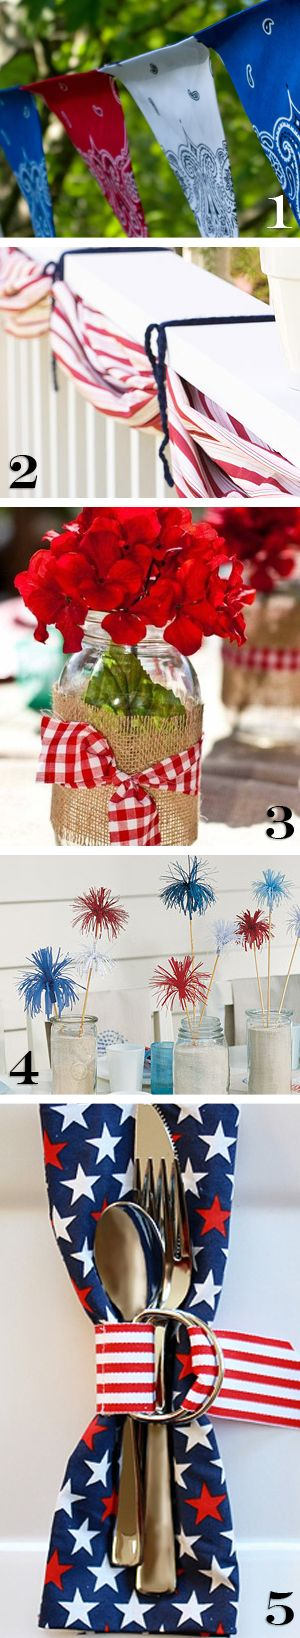 Entertaining outdoors chic on the cheap patriotic for 4th of july decorating ideas for outside